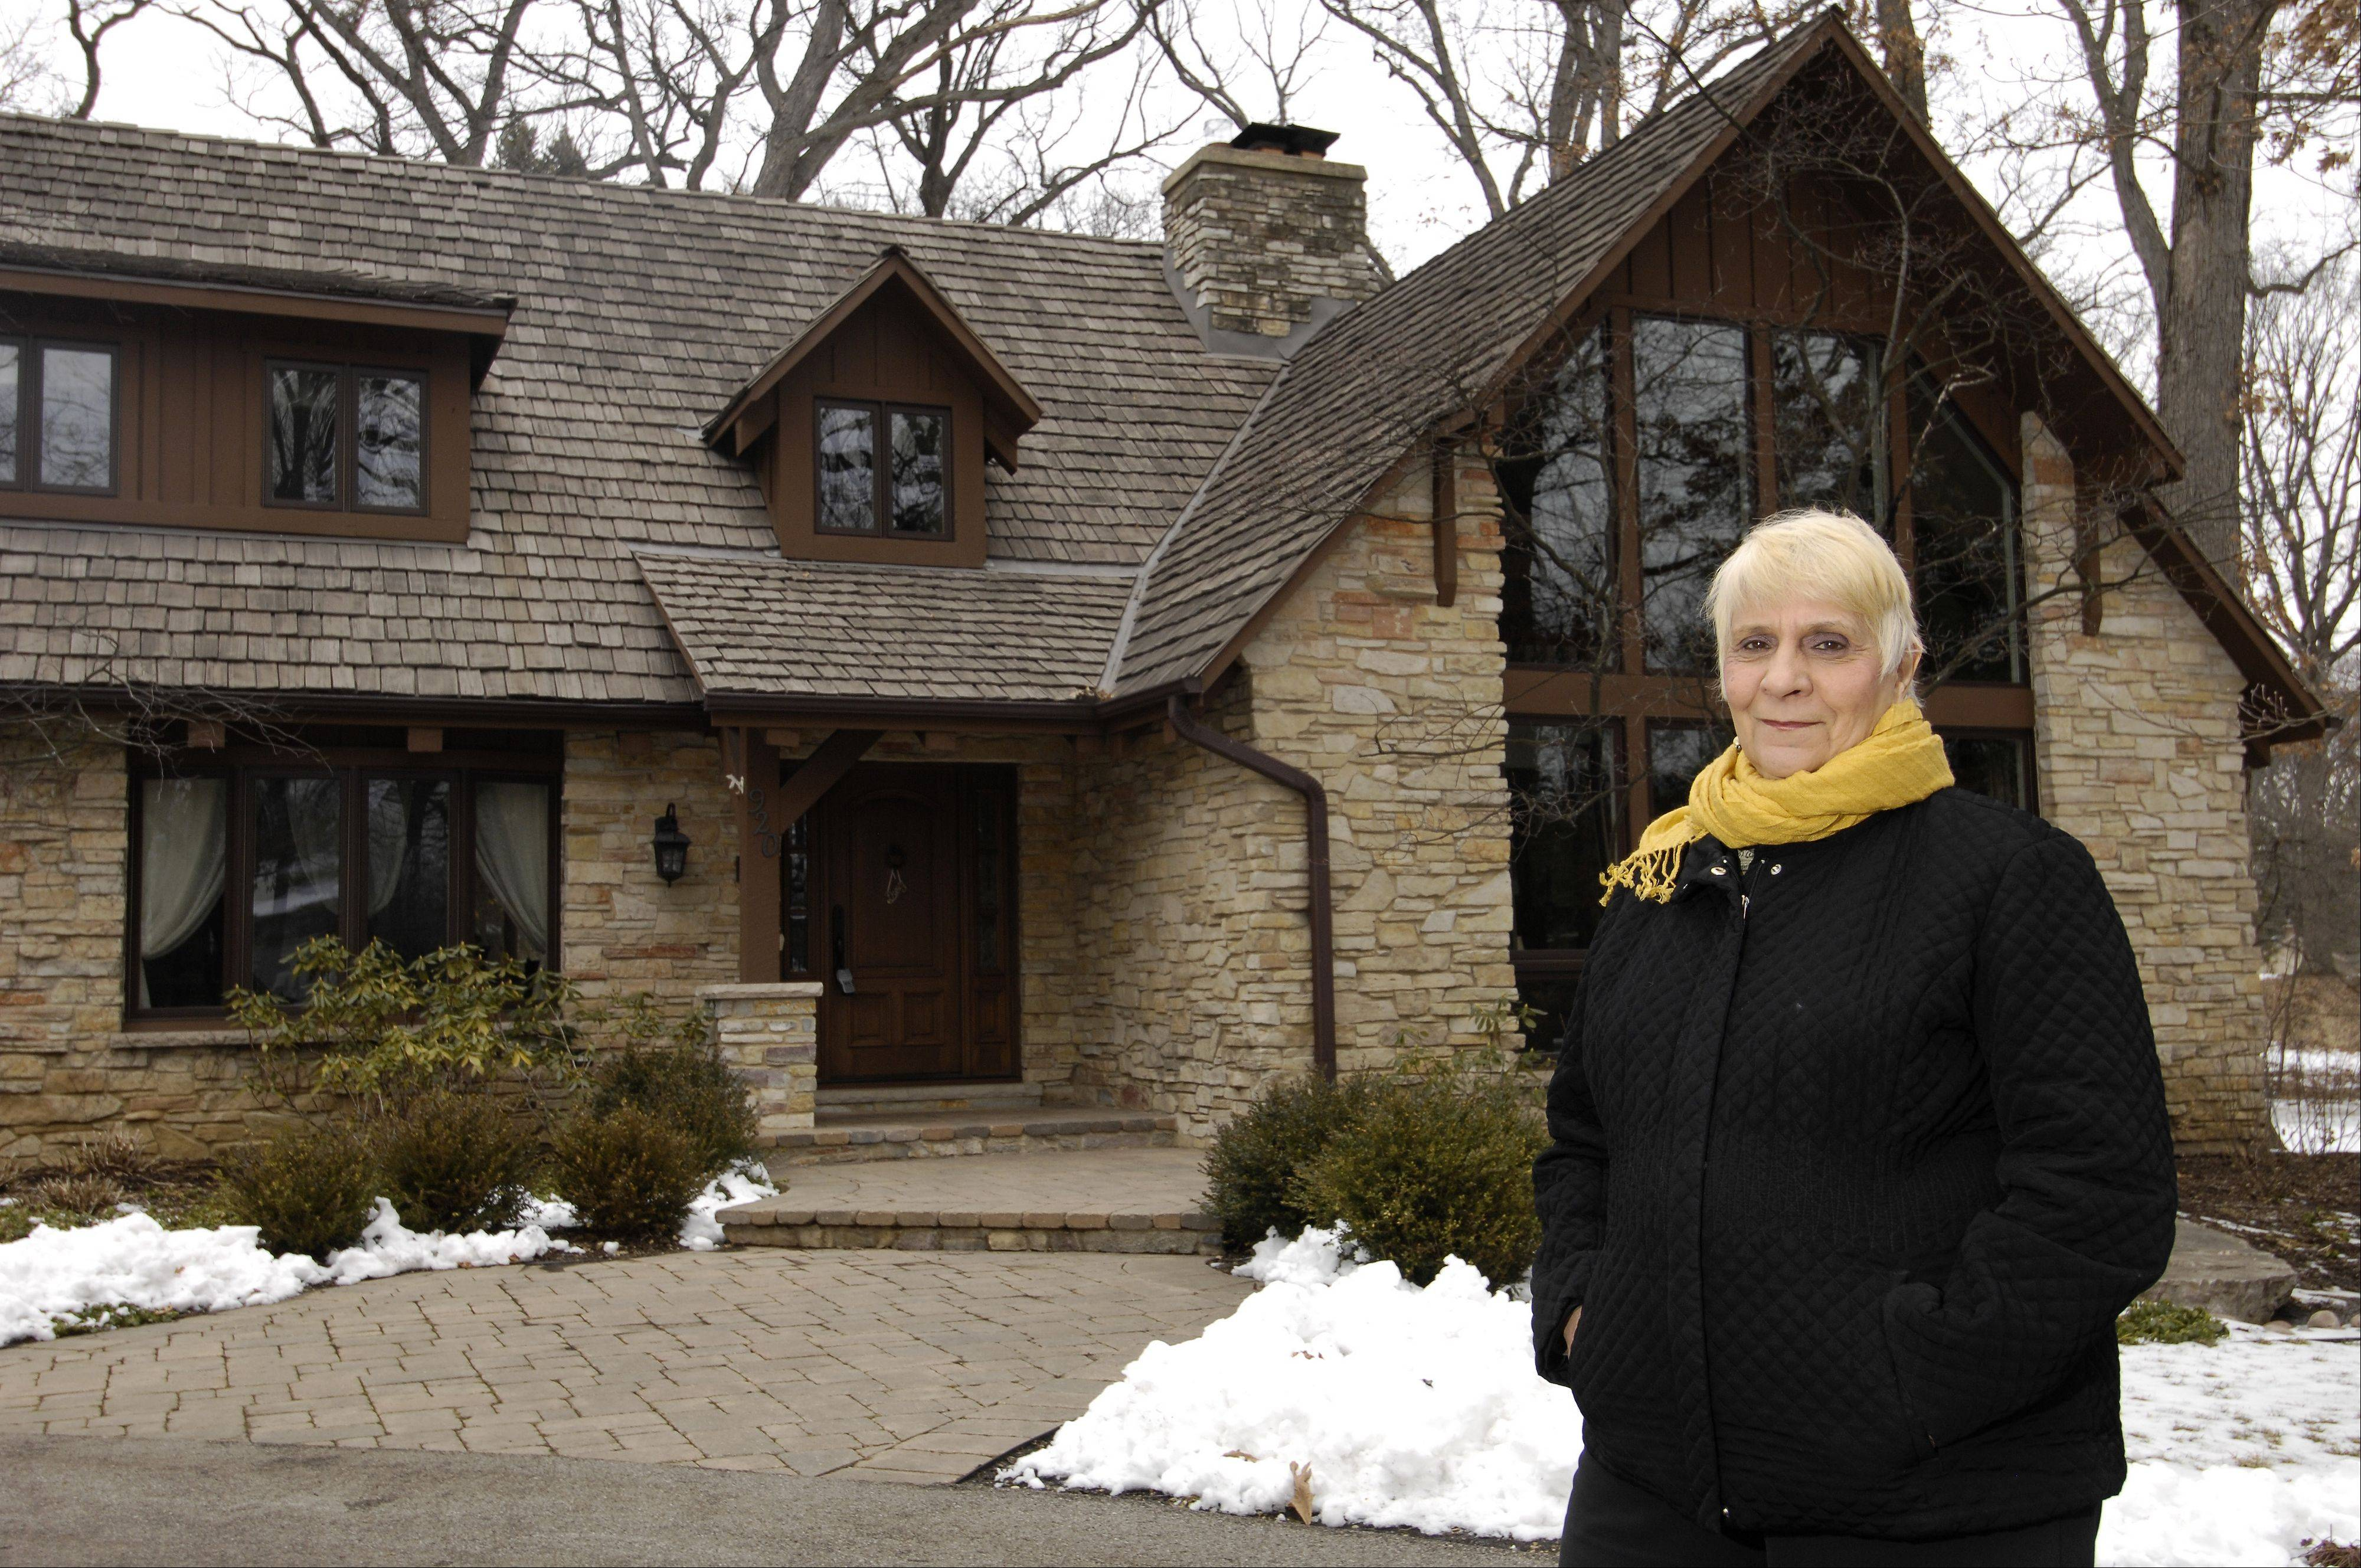 RE/MAX Realtor Mary Beth Lynch will hold an open house at this home, 920 Ellynwood Drive in Glen Ellyn, from 2 to 4 p.m. Sunday, March 10.